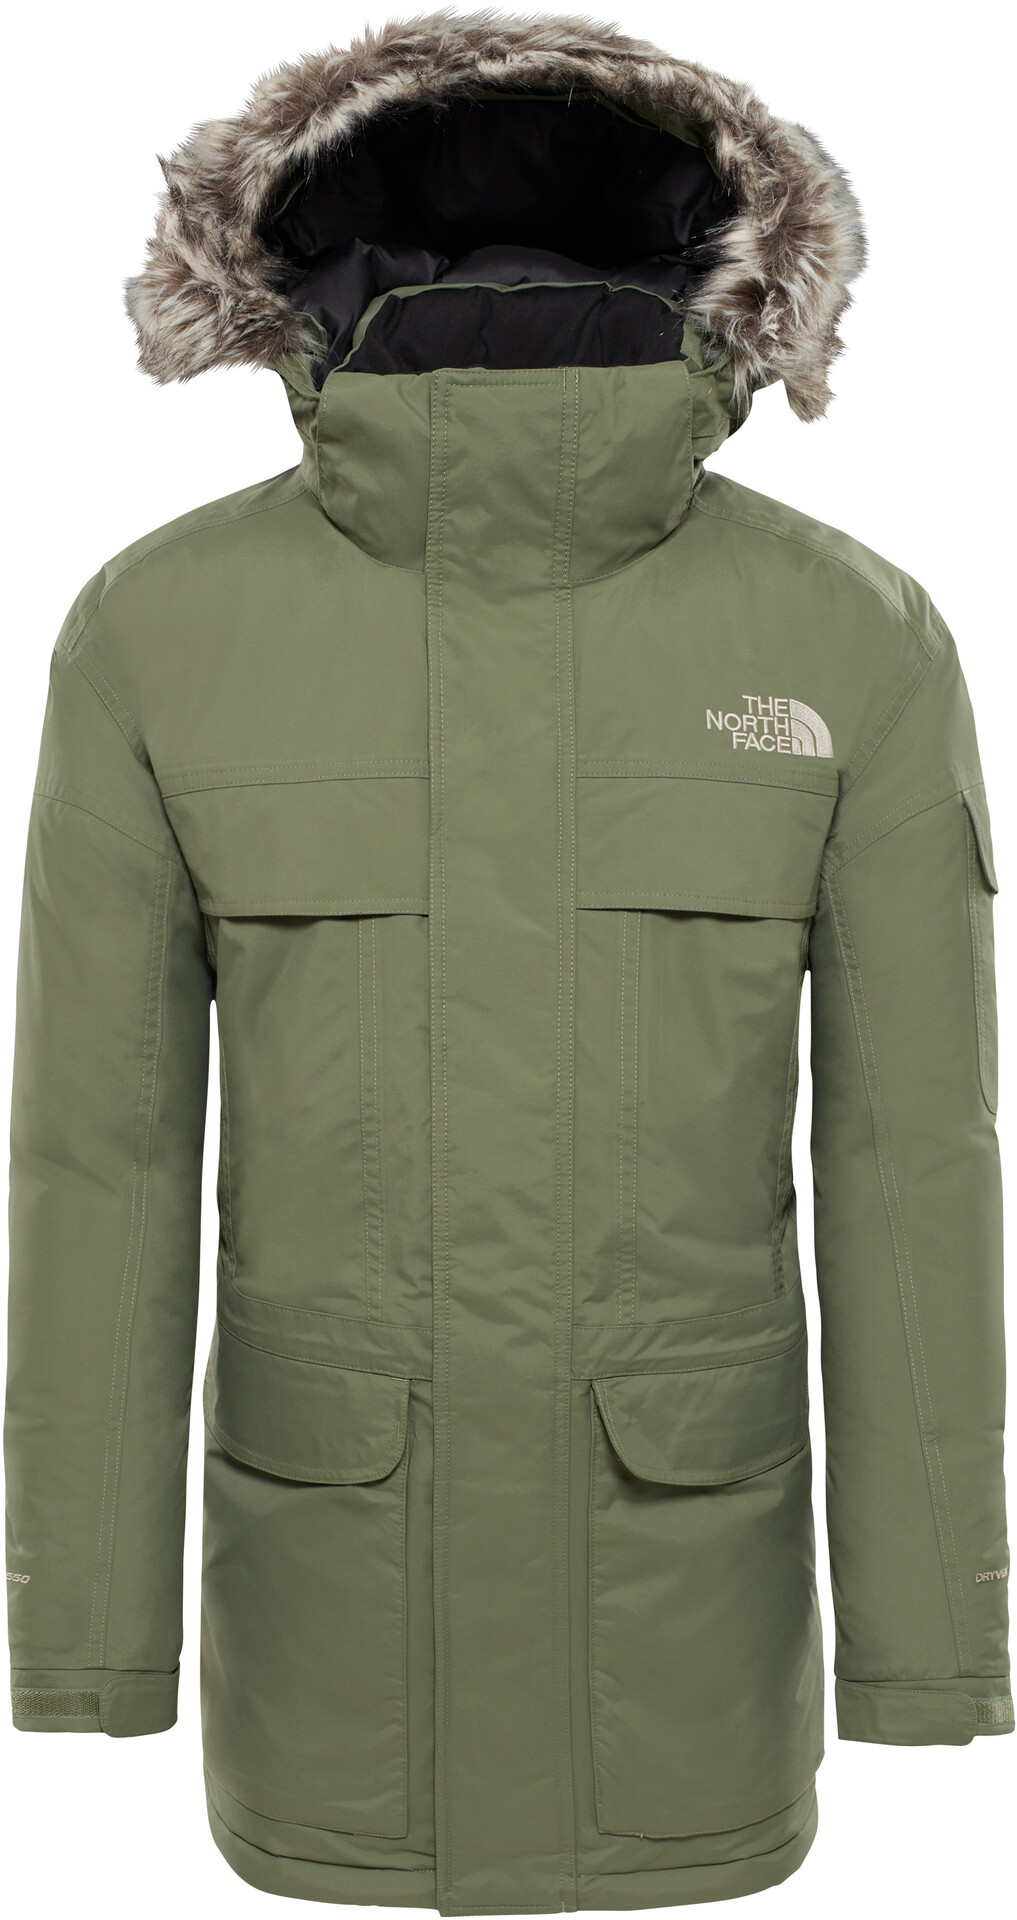 Face North The Oliva es Mcmurdo Chaqueta Campz Hombre P5dvw